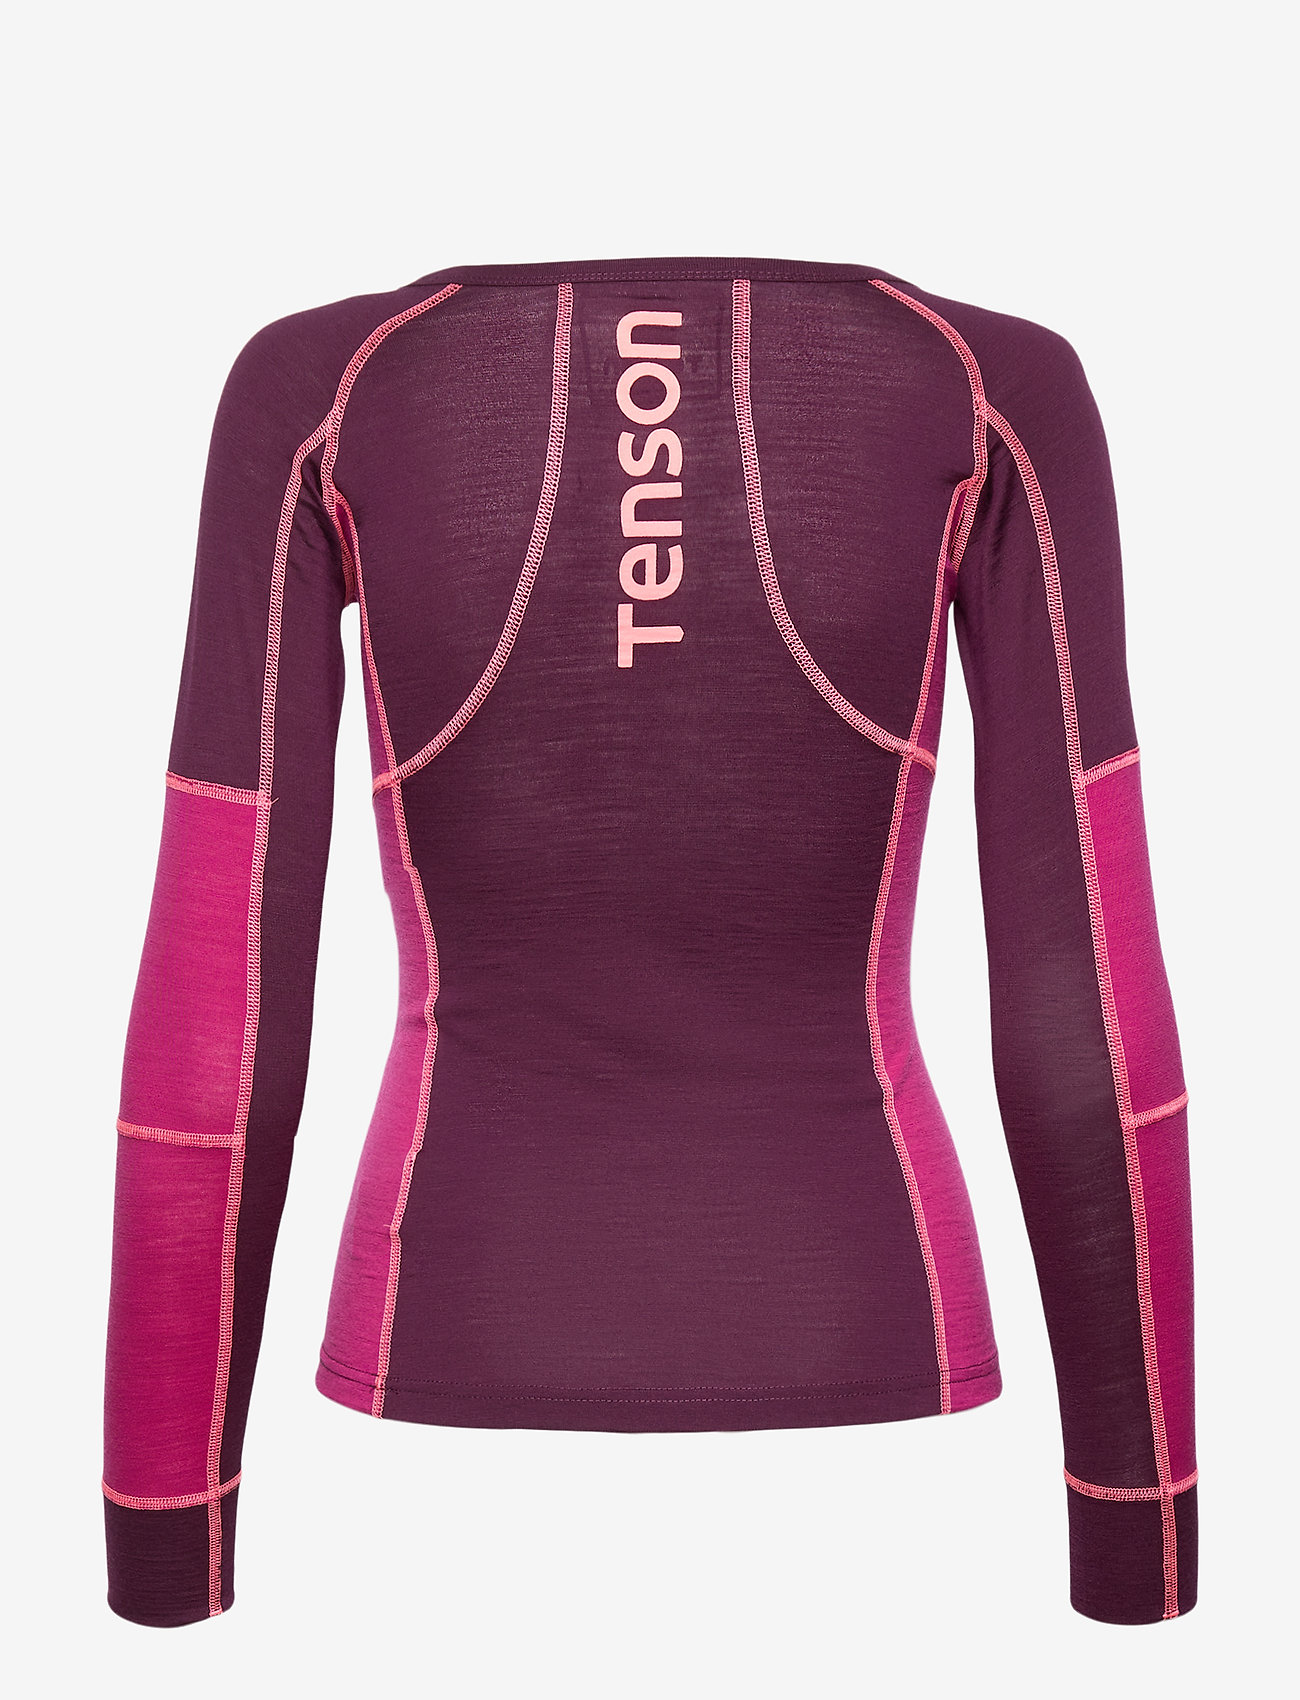 Tenson - Wanda - base layer tops - wine - 1